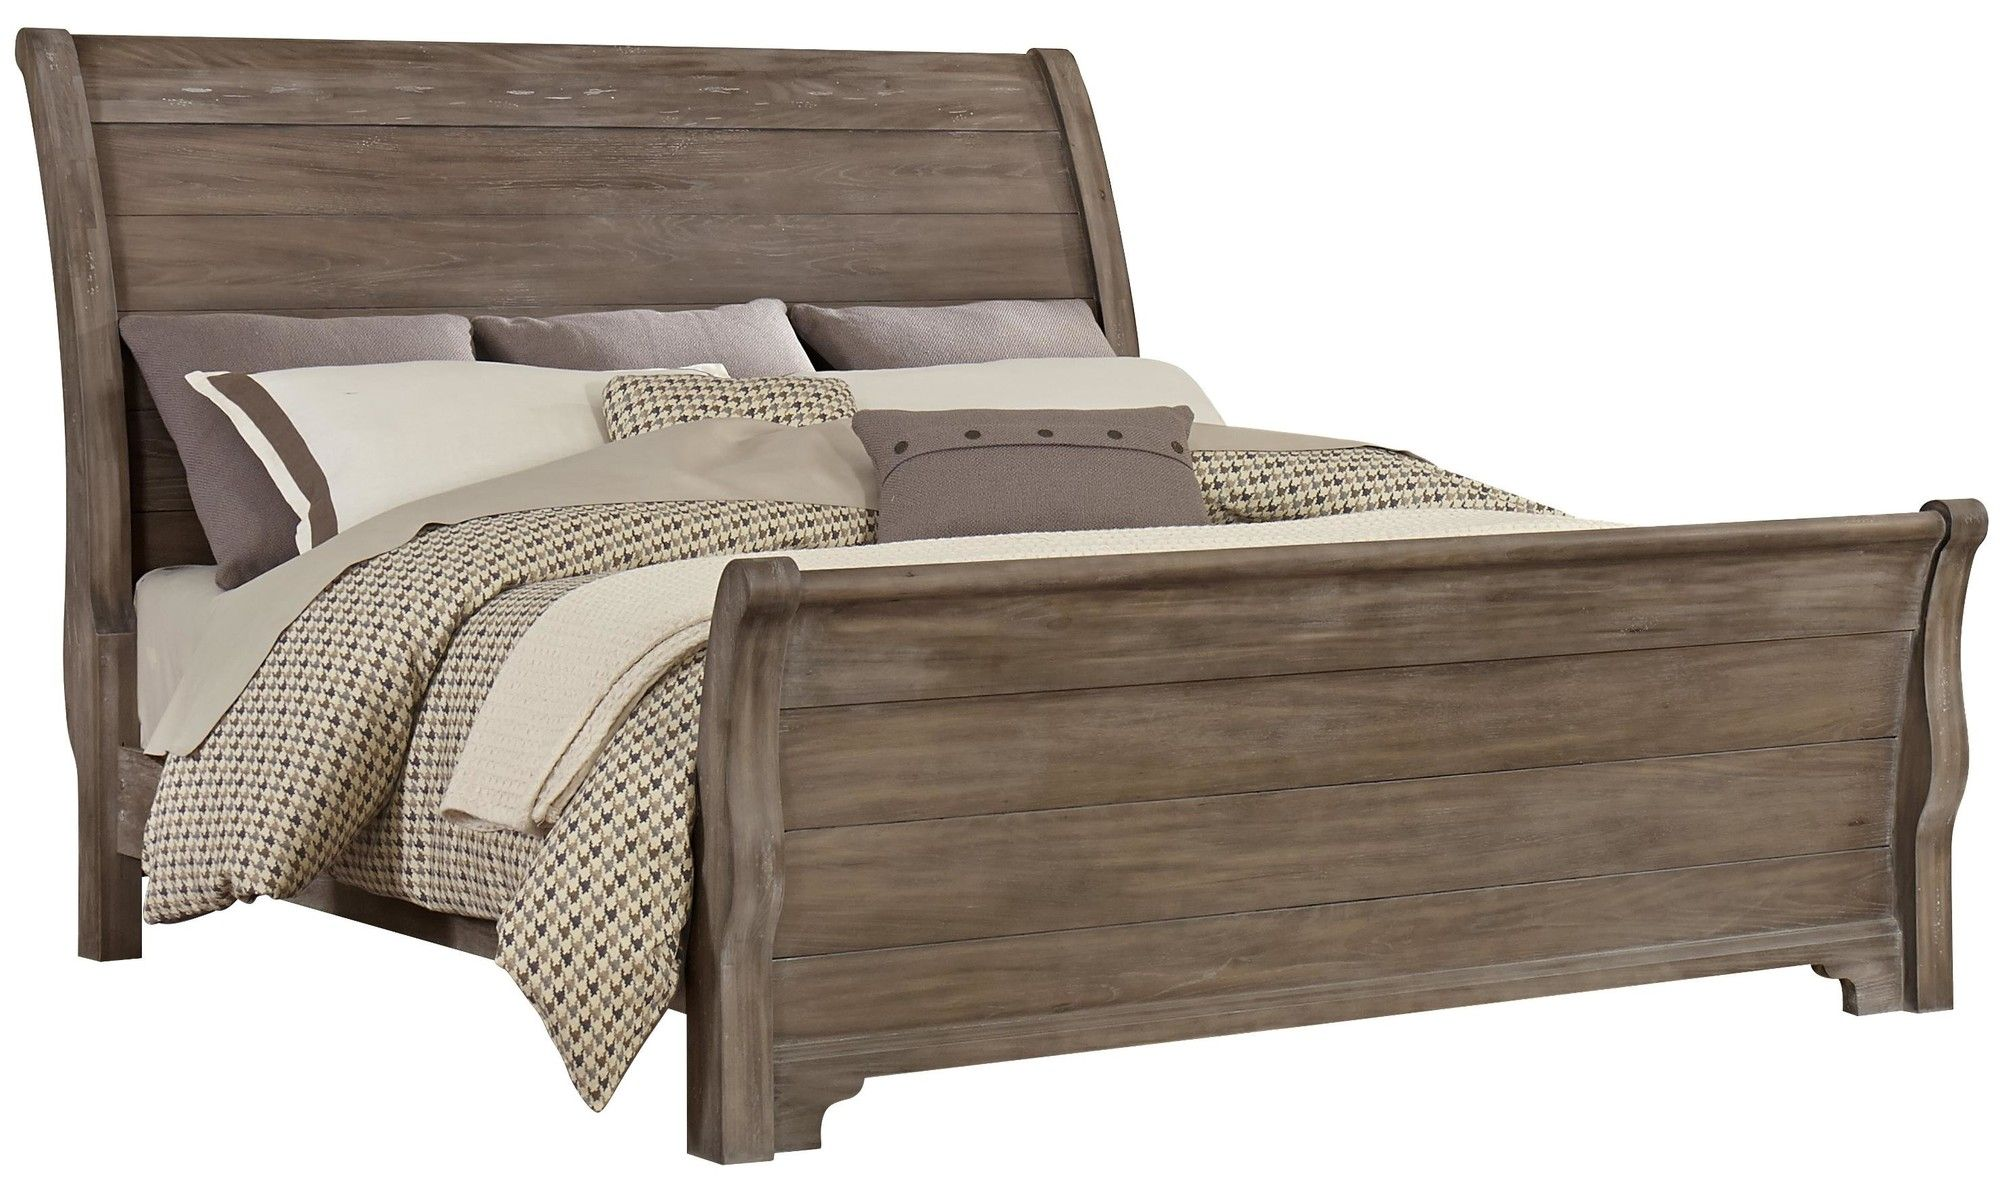 Joss And Main Bed Linens Luxury Wood Platform Bed King Sleigh Bed